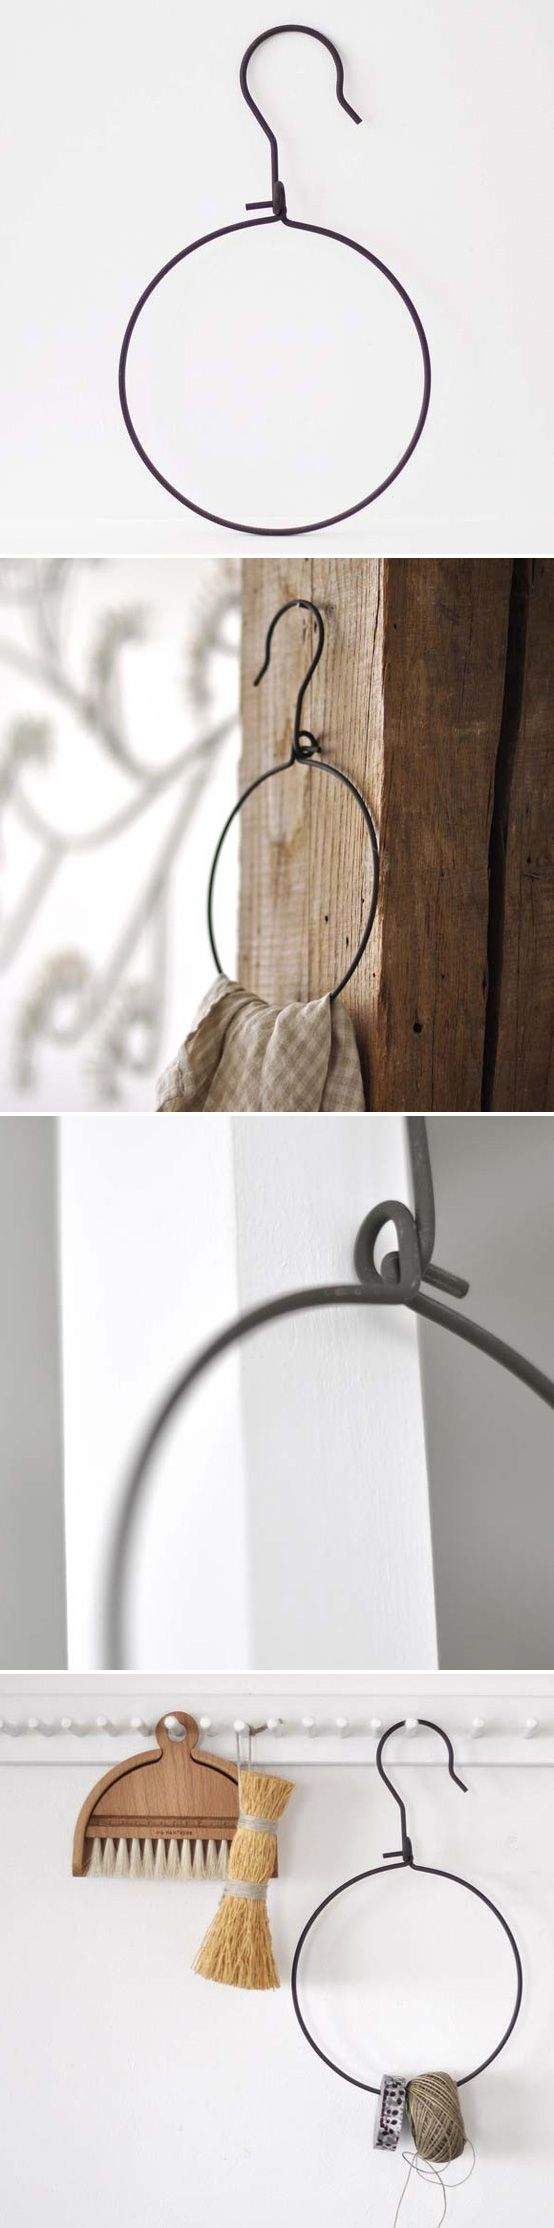 DIY :: WIRE HOOK HANGER :: This wire hook (from some French retailer) can easily be made yourself. I love the idea of hanging twine or towels from it. | #wire #farmhousedecor #rusticdecor